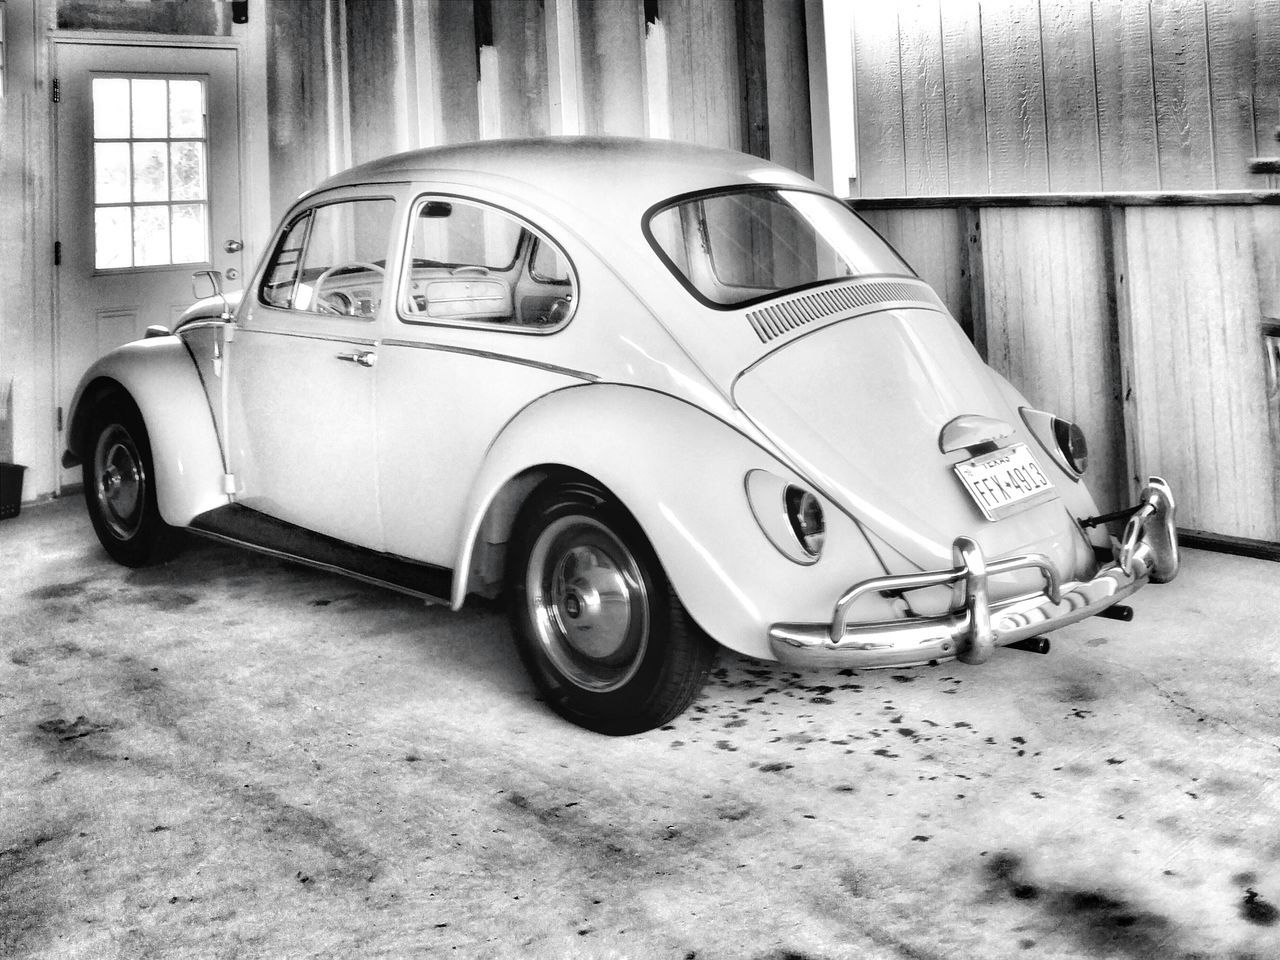 Black And White Black & White Black And White Photography EyeEm Best Shots - Black + White Black And White Collection  EyeEm Black&white! Volkswagon German Cars Meinautomoment Fort Worth Texas